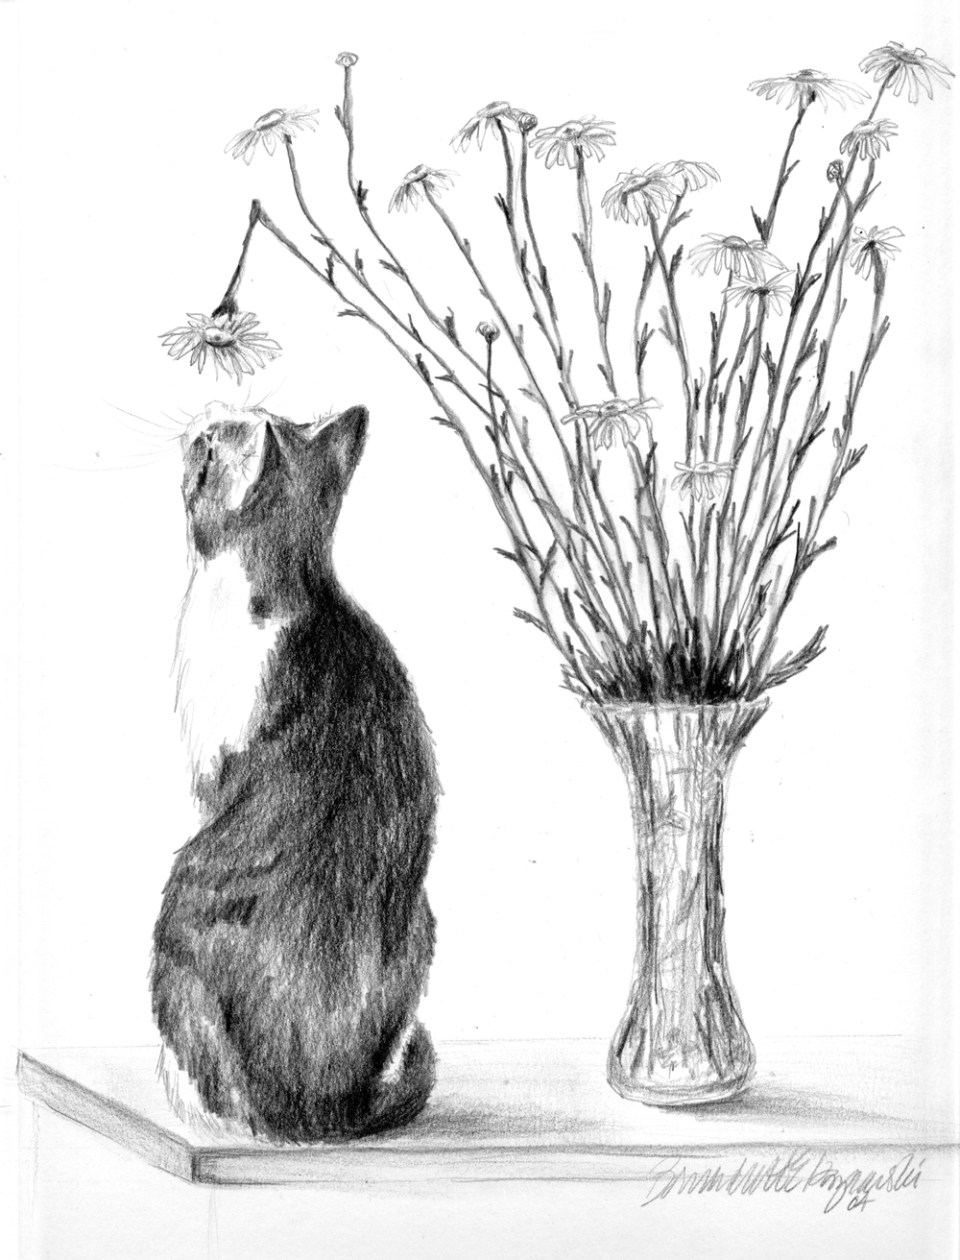 """Conversation With a Daisy"", pencil on cream cotton paper, 9"" x 12"", 2004 © B.E. Kazmarski"